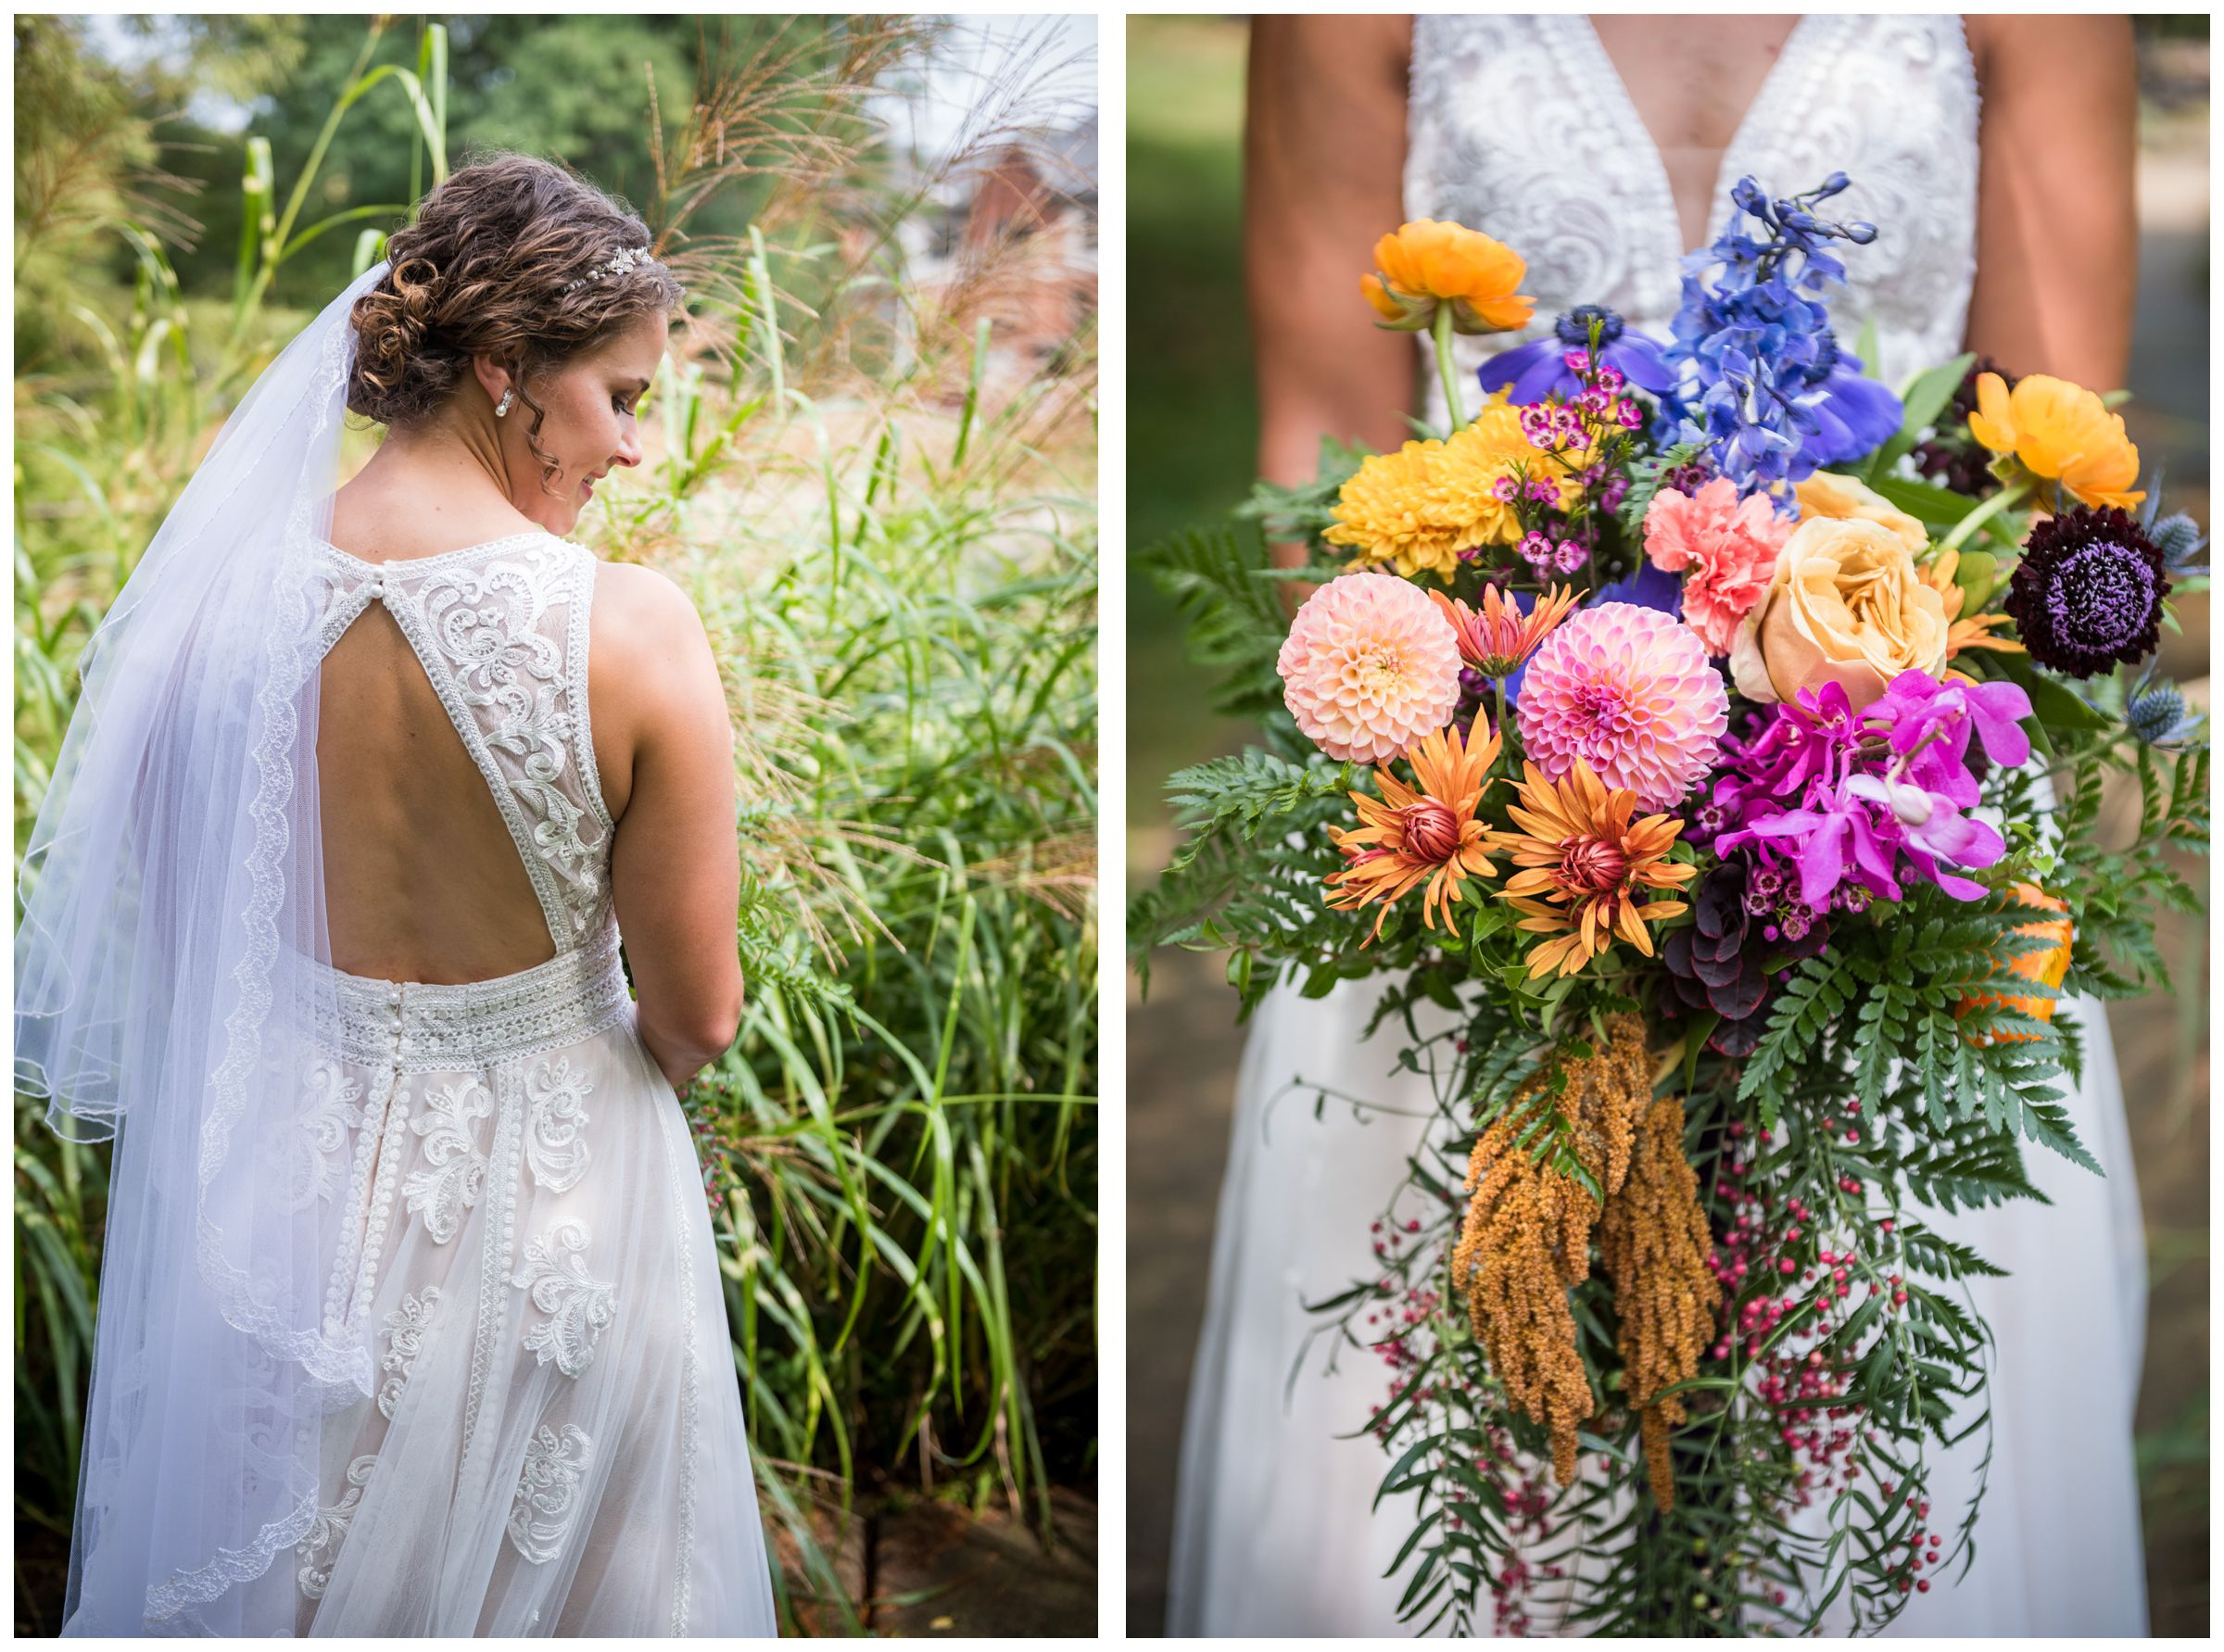 bride with open back lace wedding dress and jewel-toned colorful bouquet